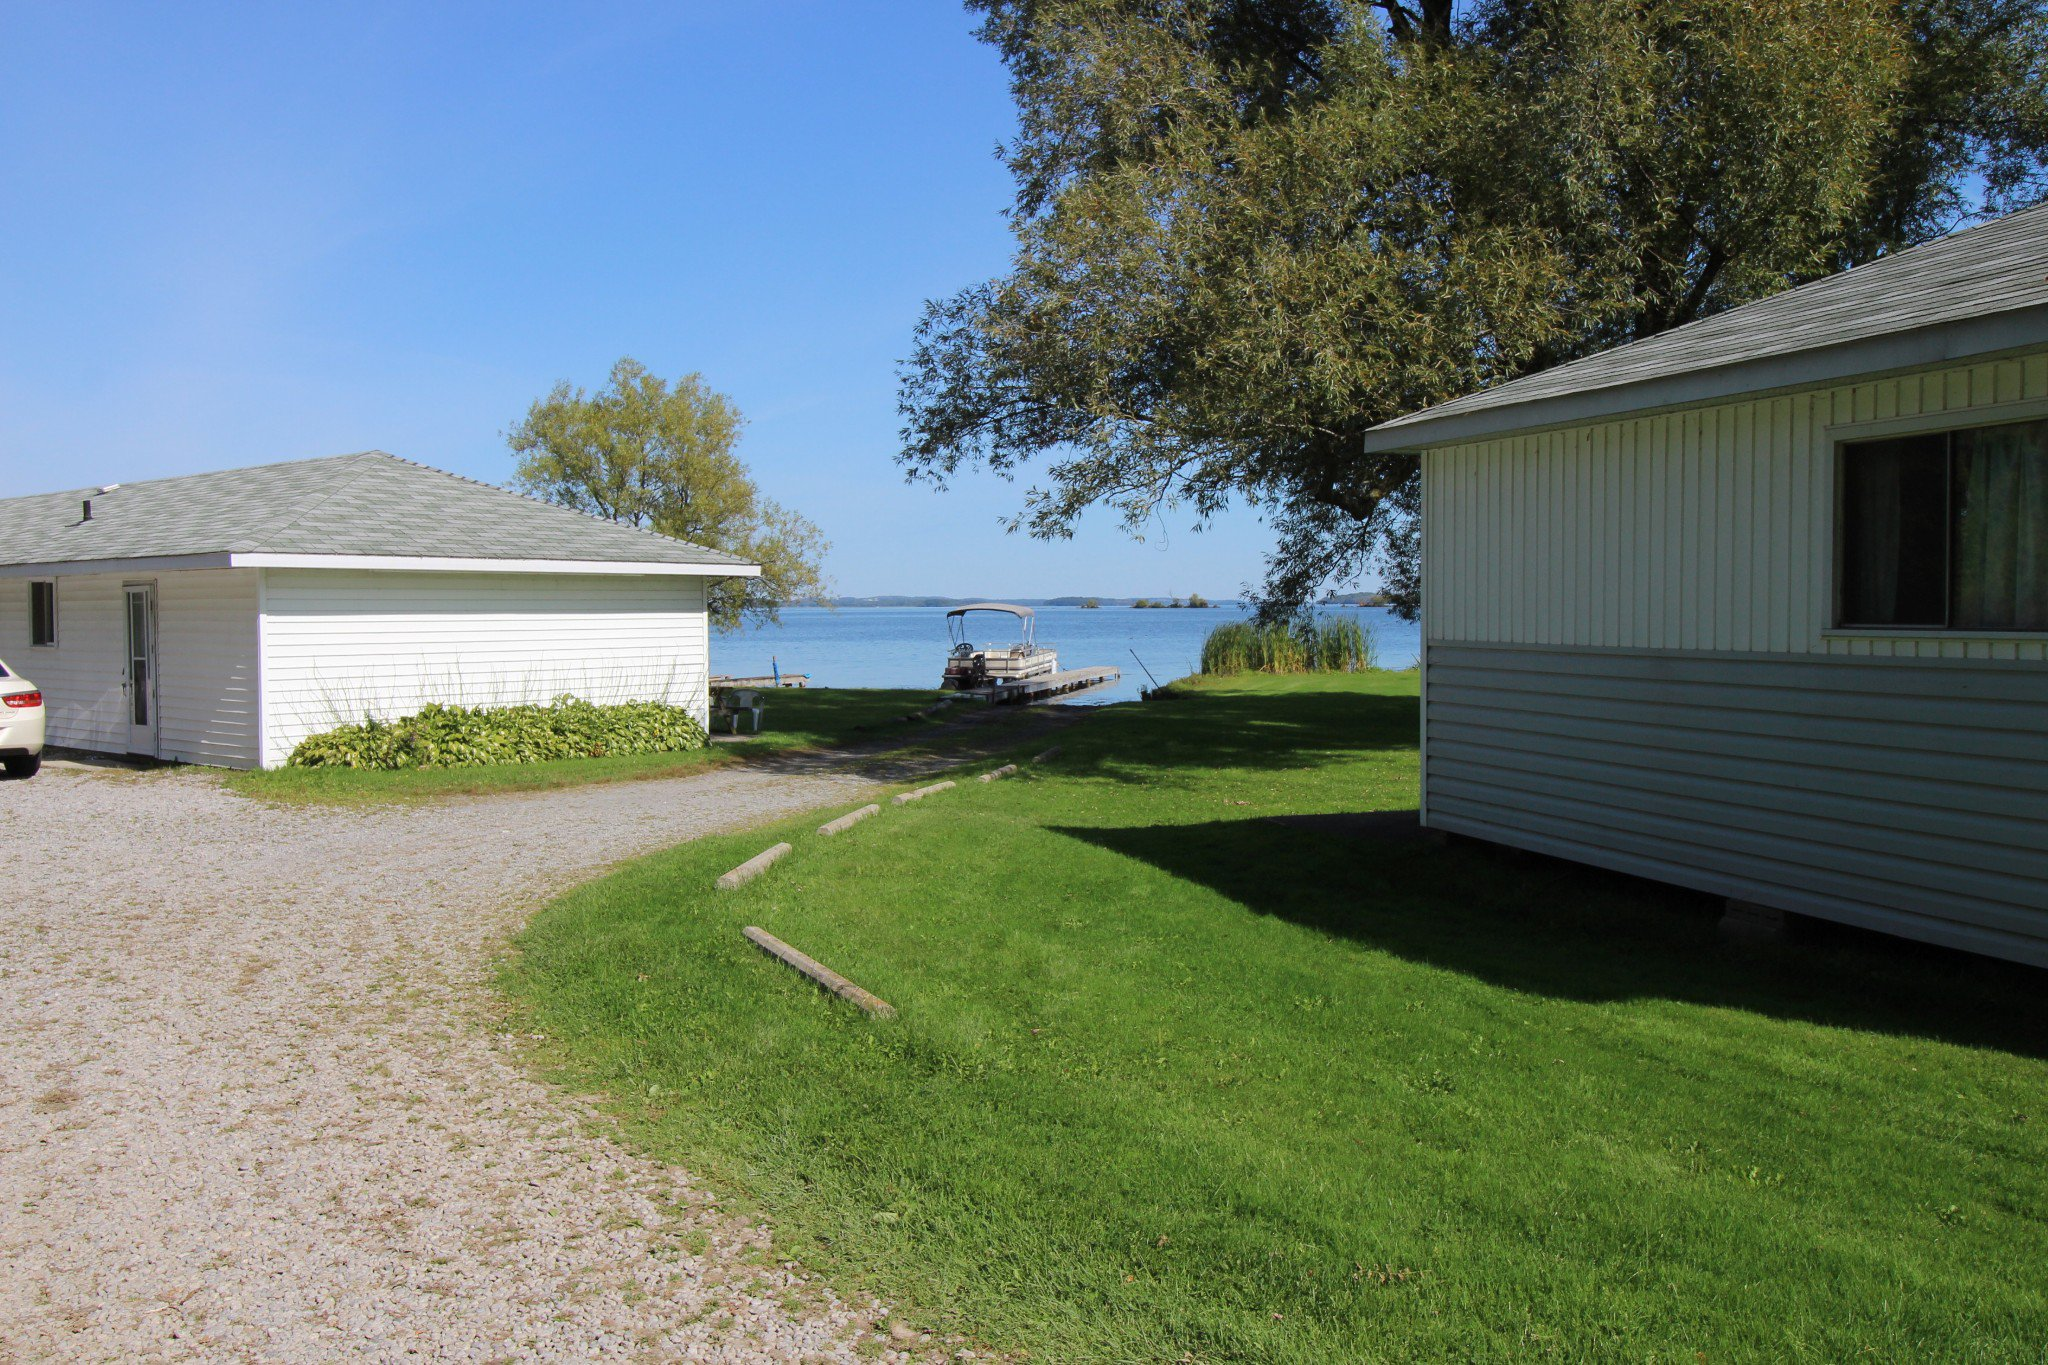 Photo 8: Photos: 6010 Rice Lake Scenic Drive in Harwood: Other for sale : MLS®# 223405